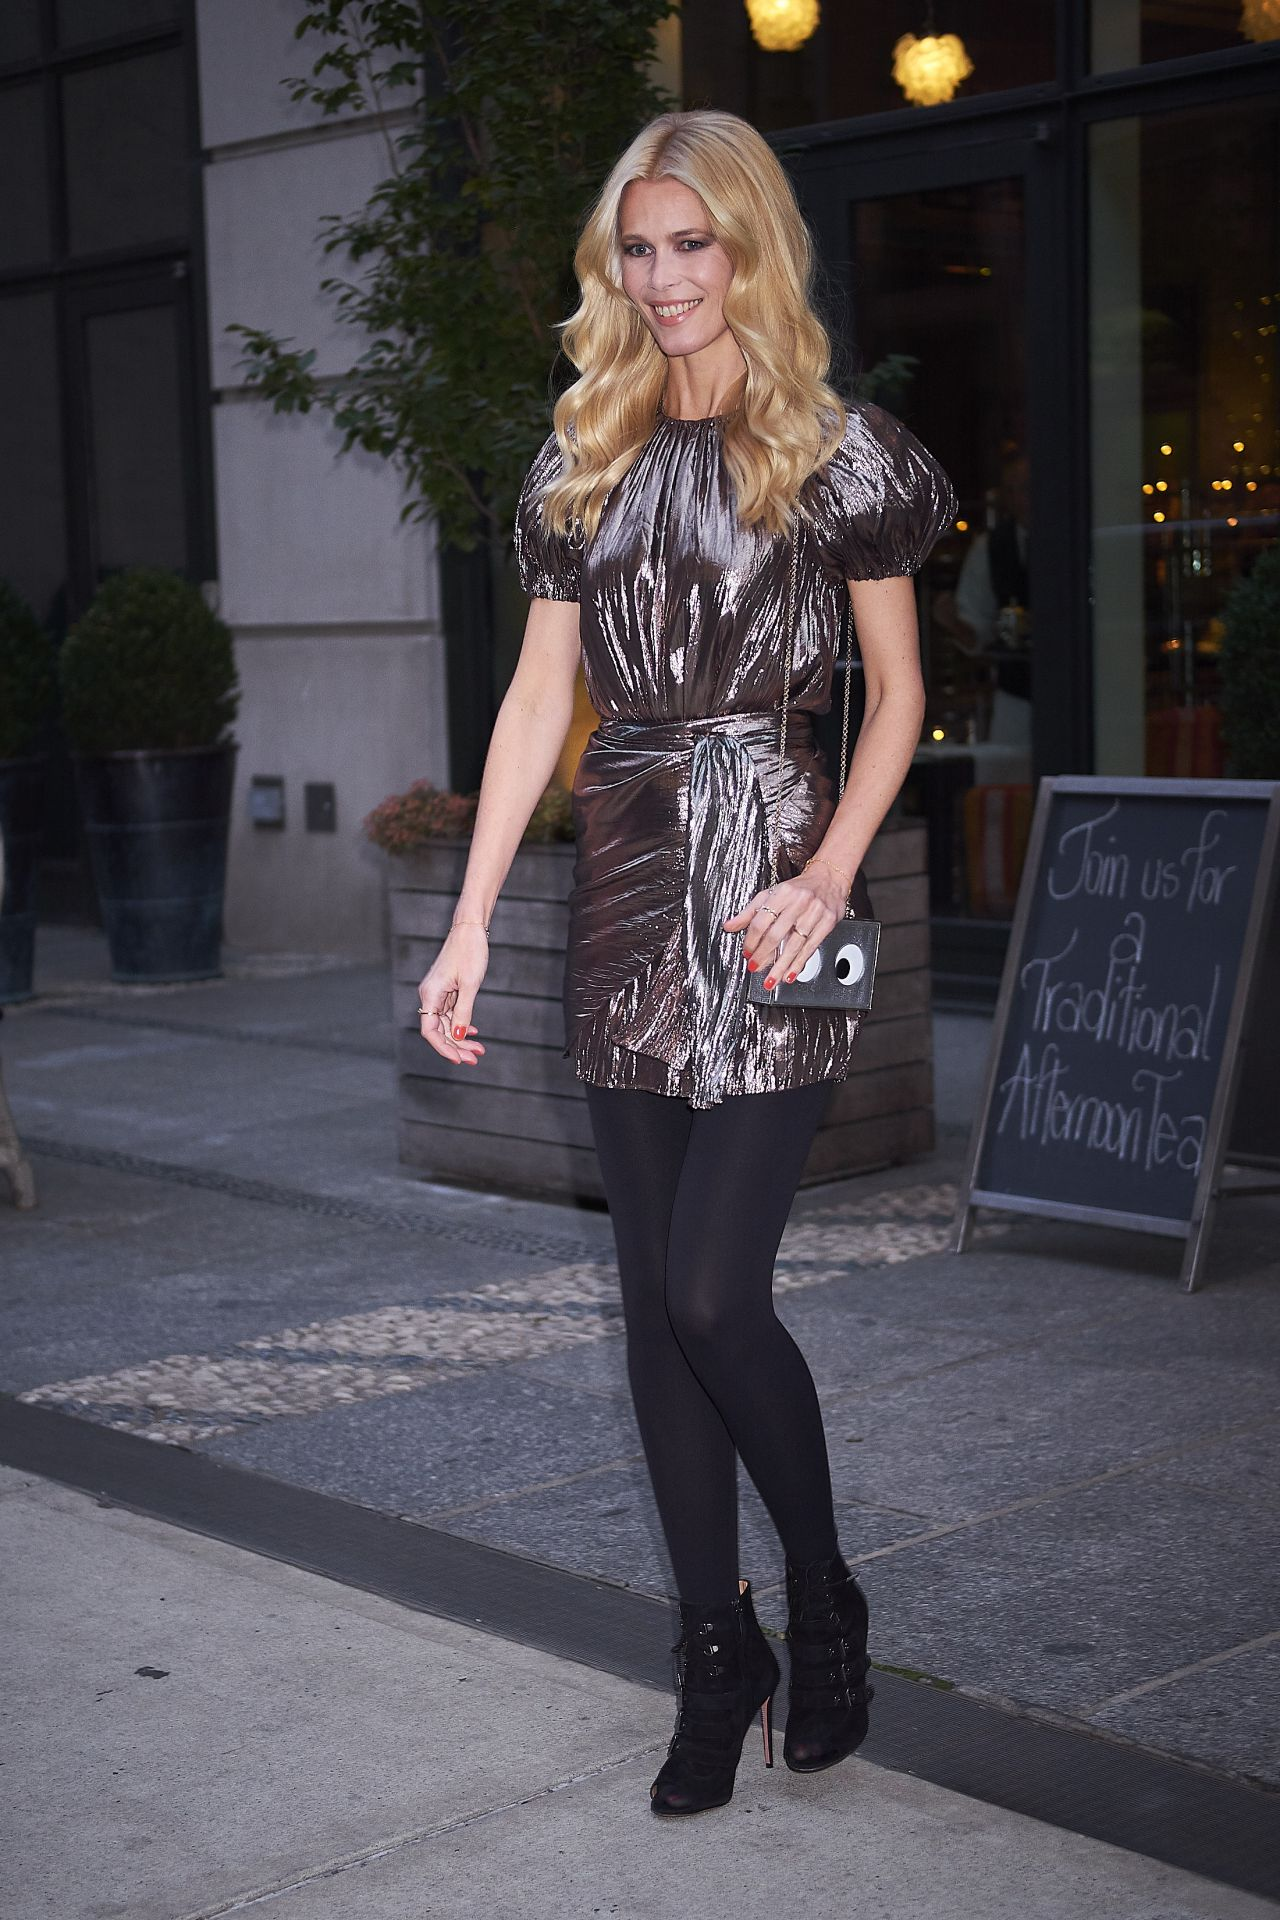 Claudia Schiffer in a Metallic dress